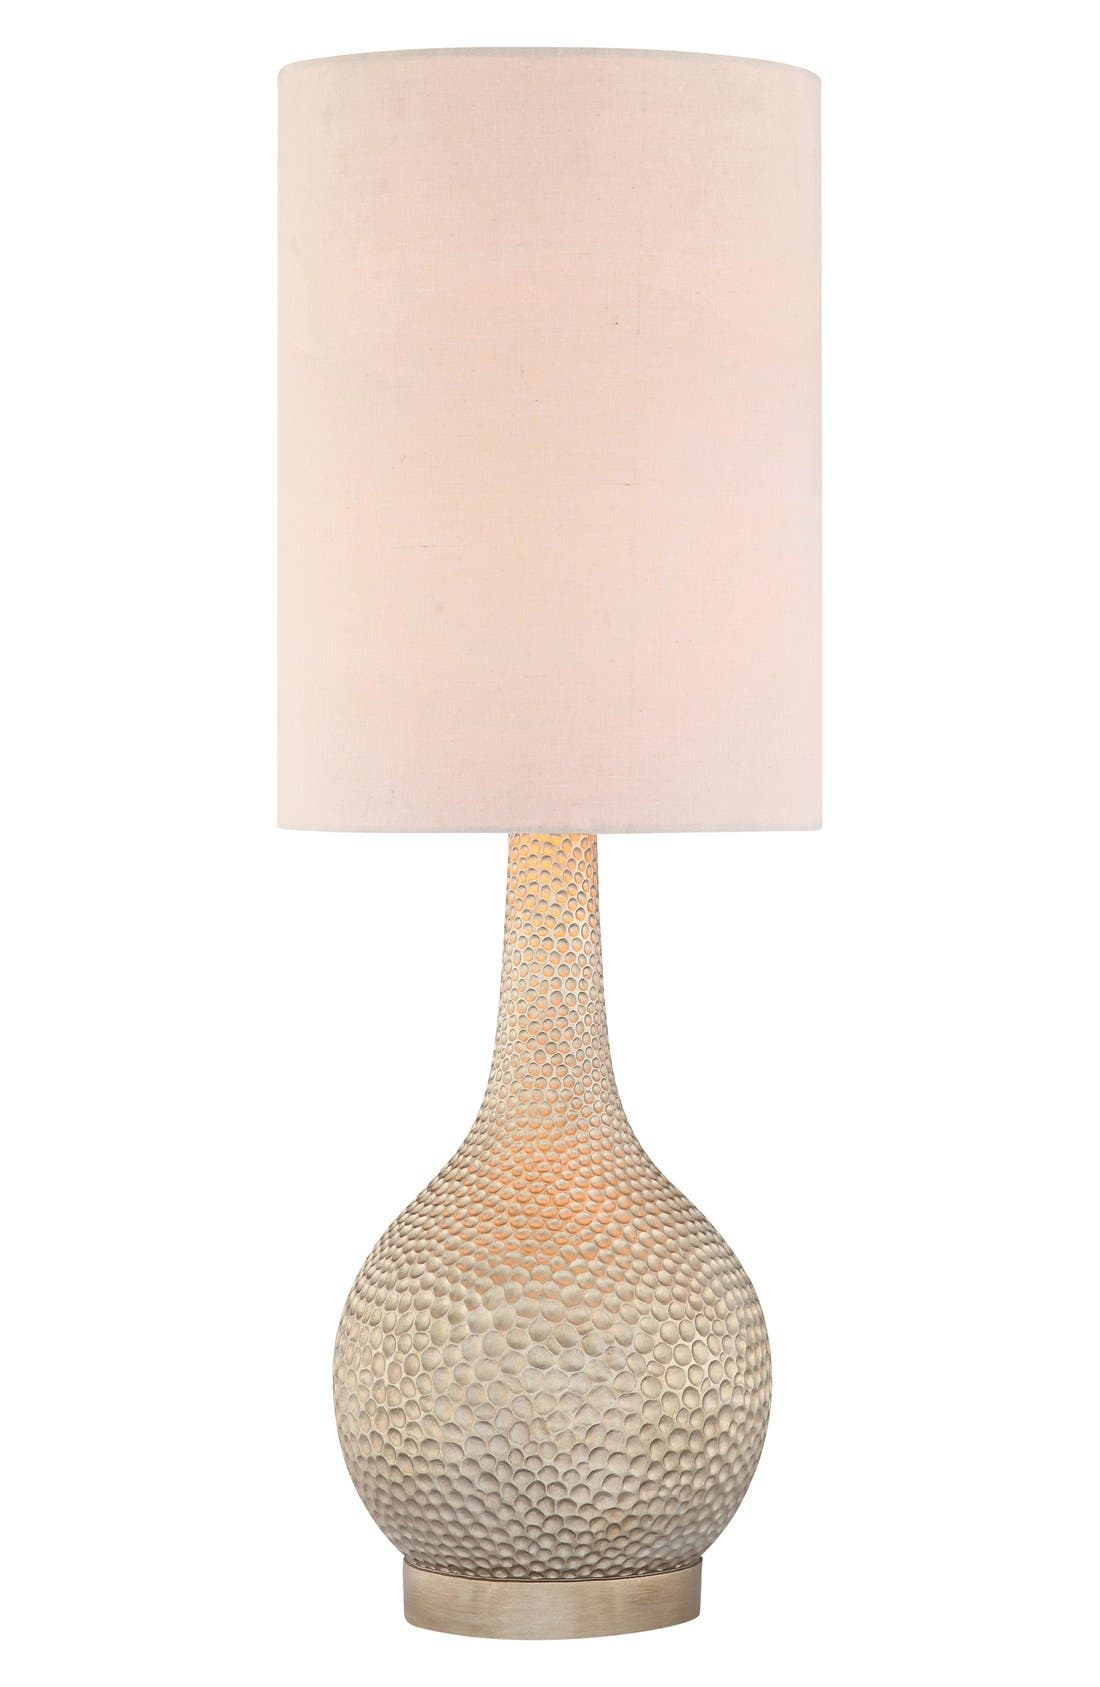 'Champagne Silver' Hammered Metal Table Lamp,                         Main,                         color, Champagne Silver